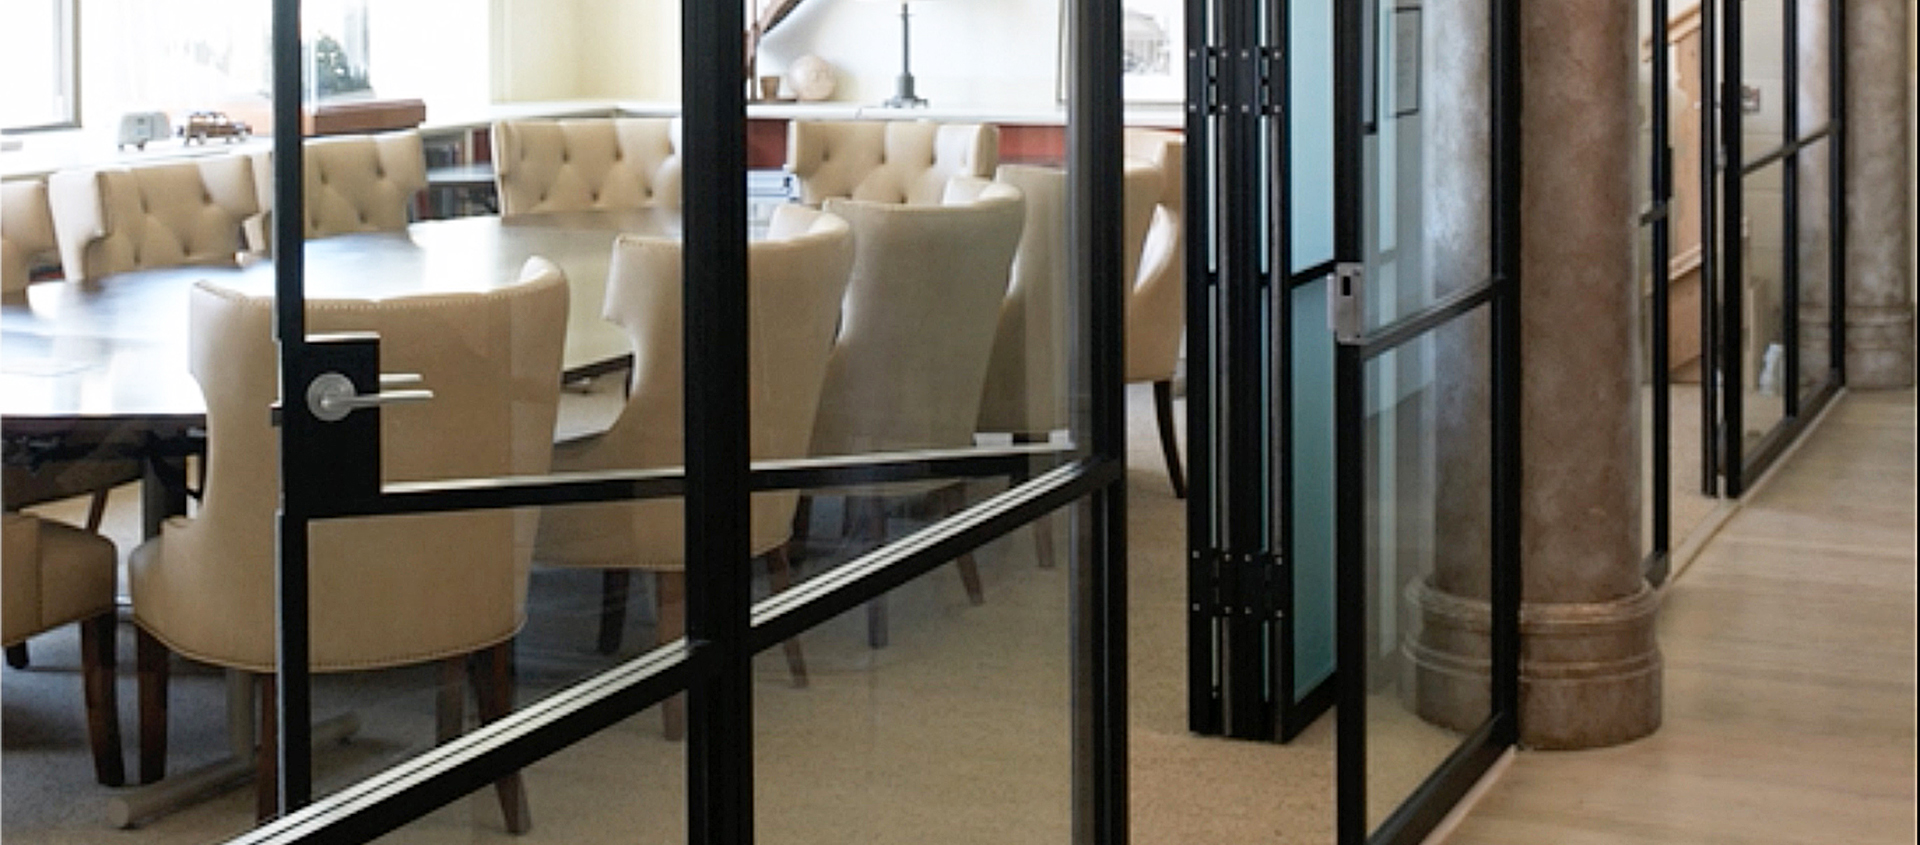 Glass wall systems by stylesglass modernfoldstyles for Folding glass walls